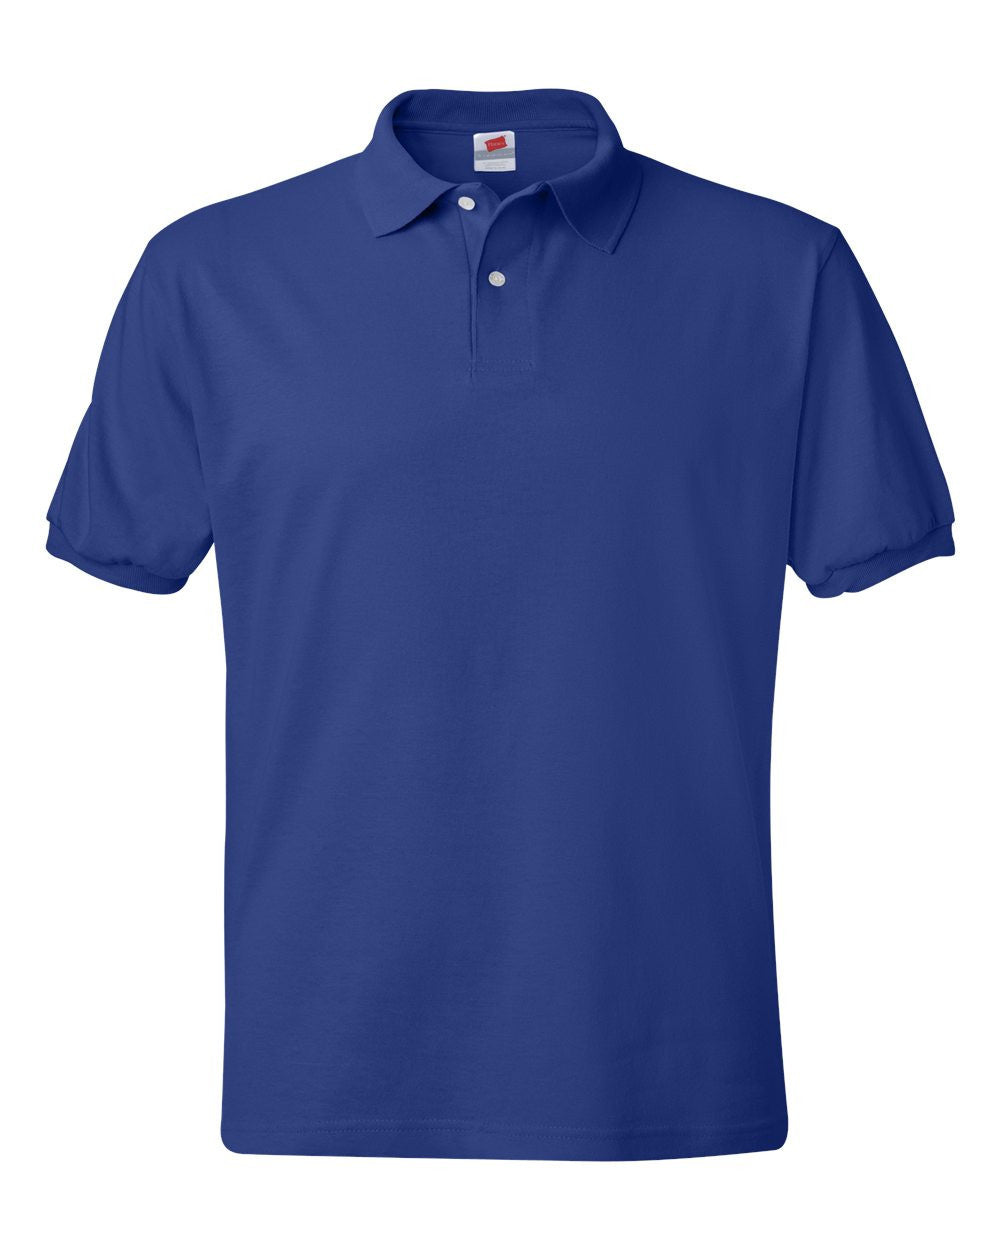 4 pack : Ecosmart polos by Hanes